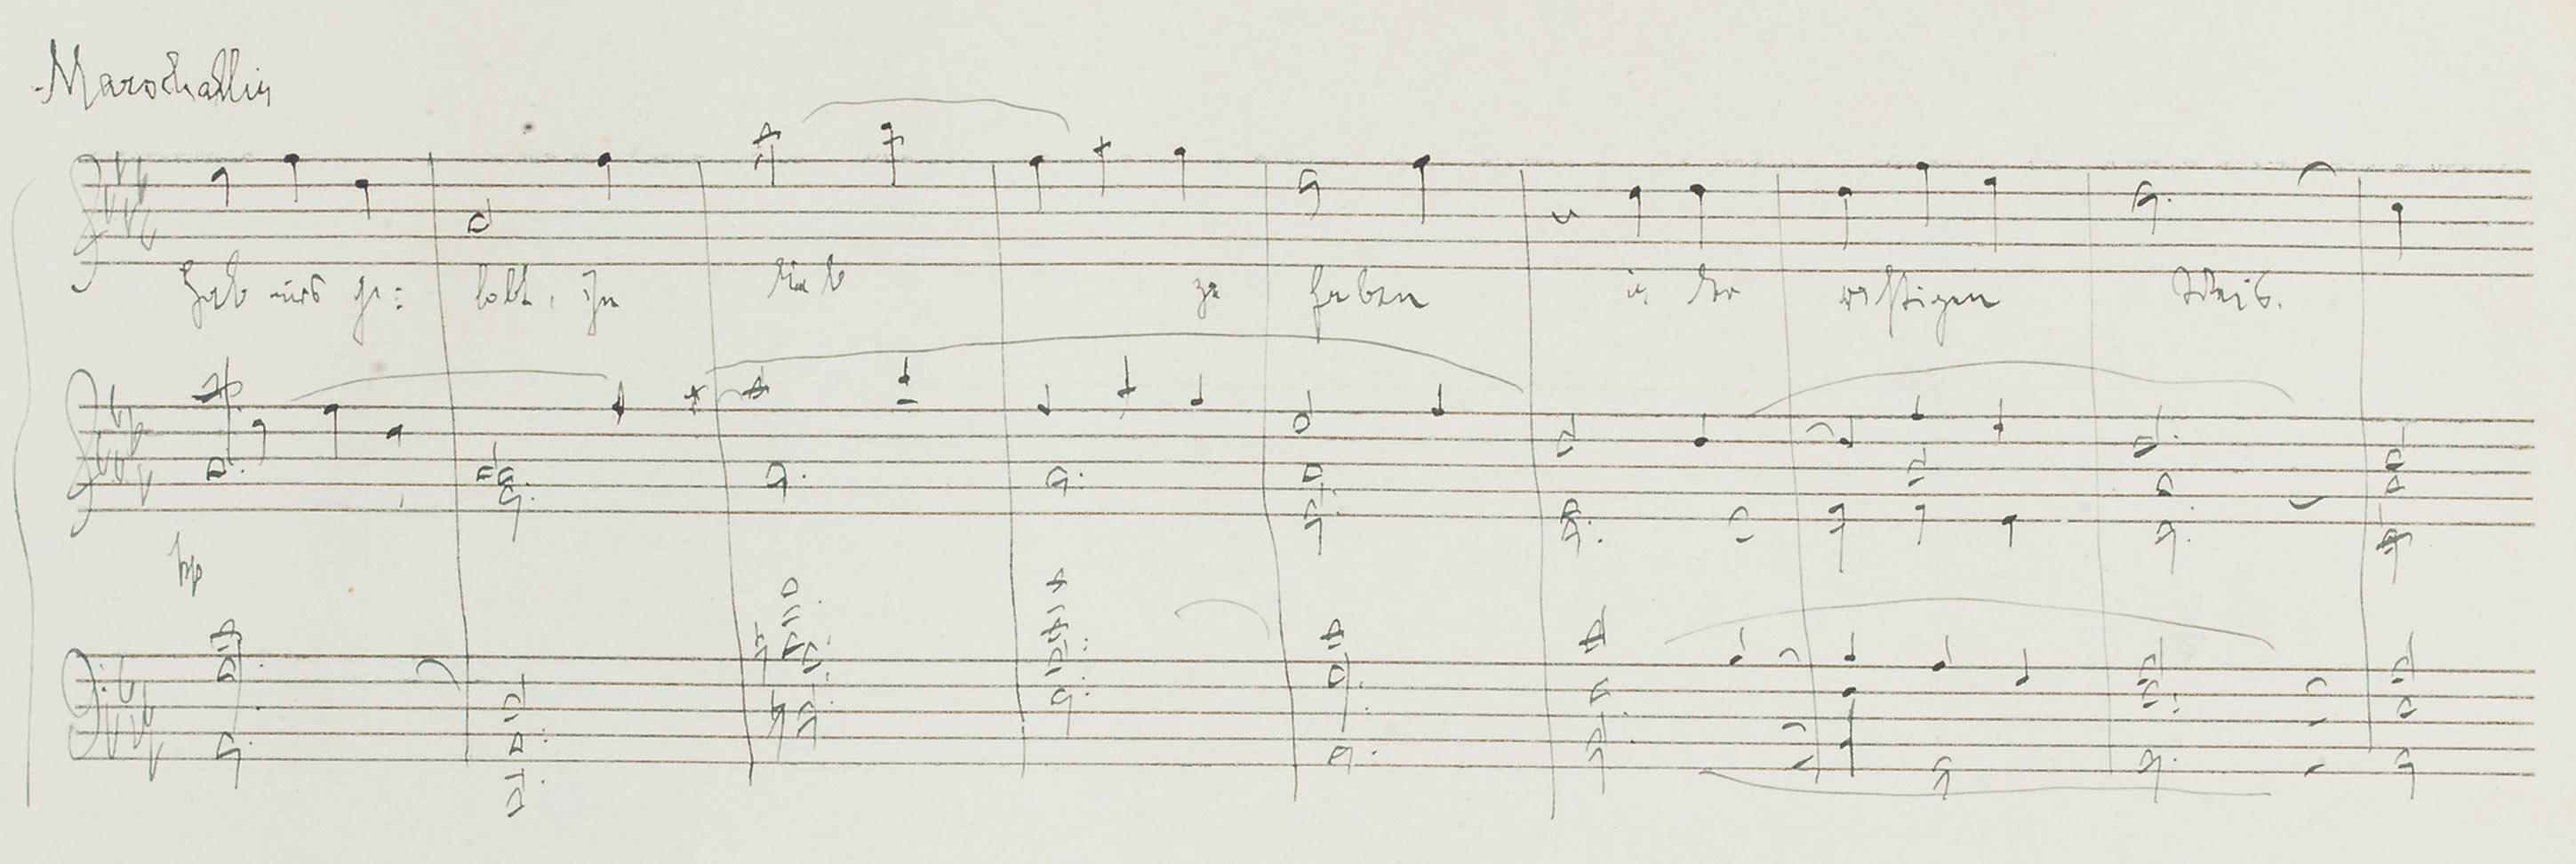 AUTOGRAPH COLLECTION -- MUSIC. An attractive autograph album including autograph quotations, signed photographs and signatures of composers and musicians including: